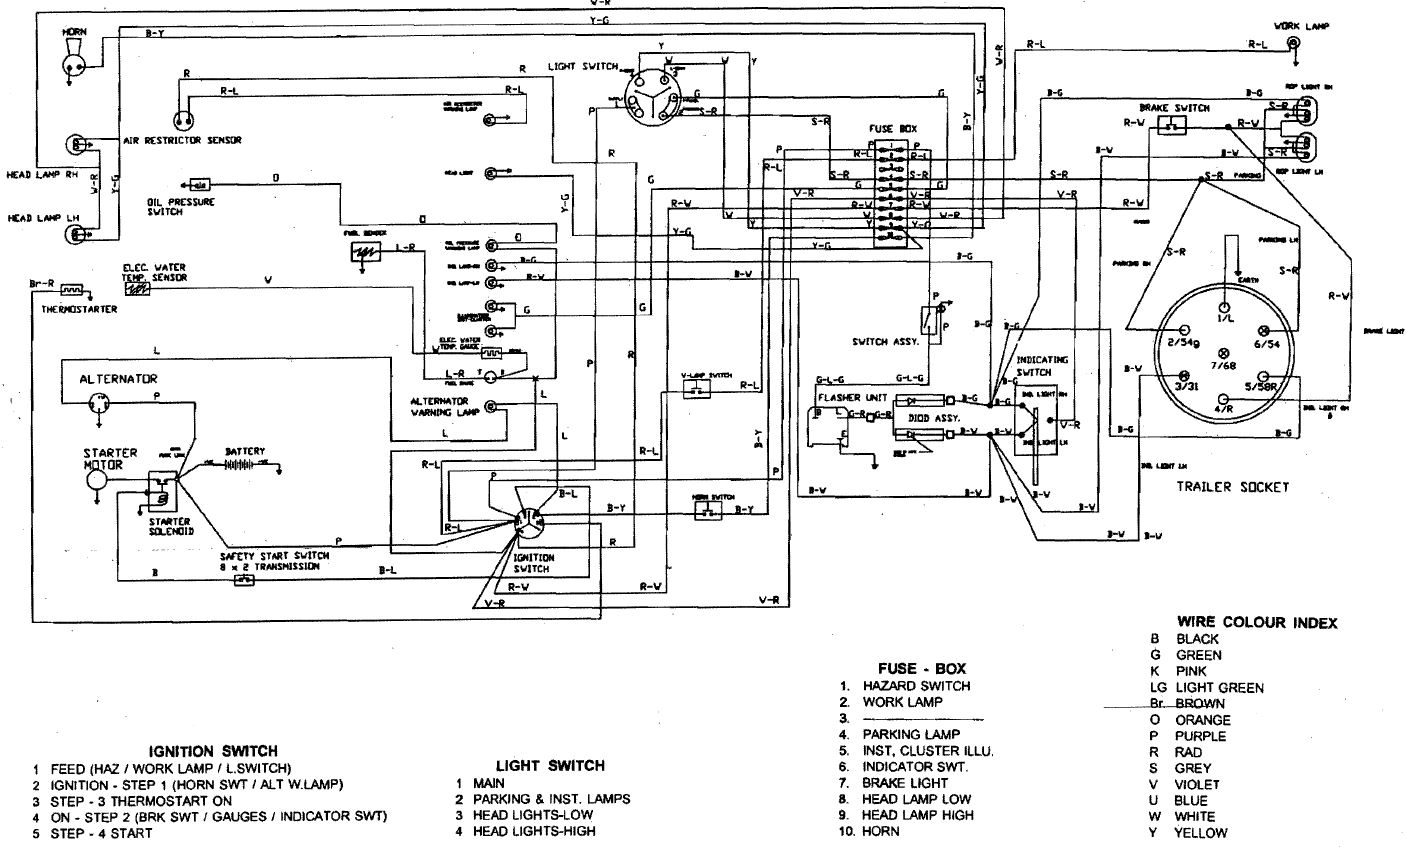 20158463319_b82d524c3d_o ignition switch wiring diagram john deere 345 wiring harness at suagrazia.org